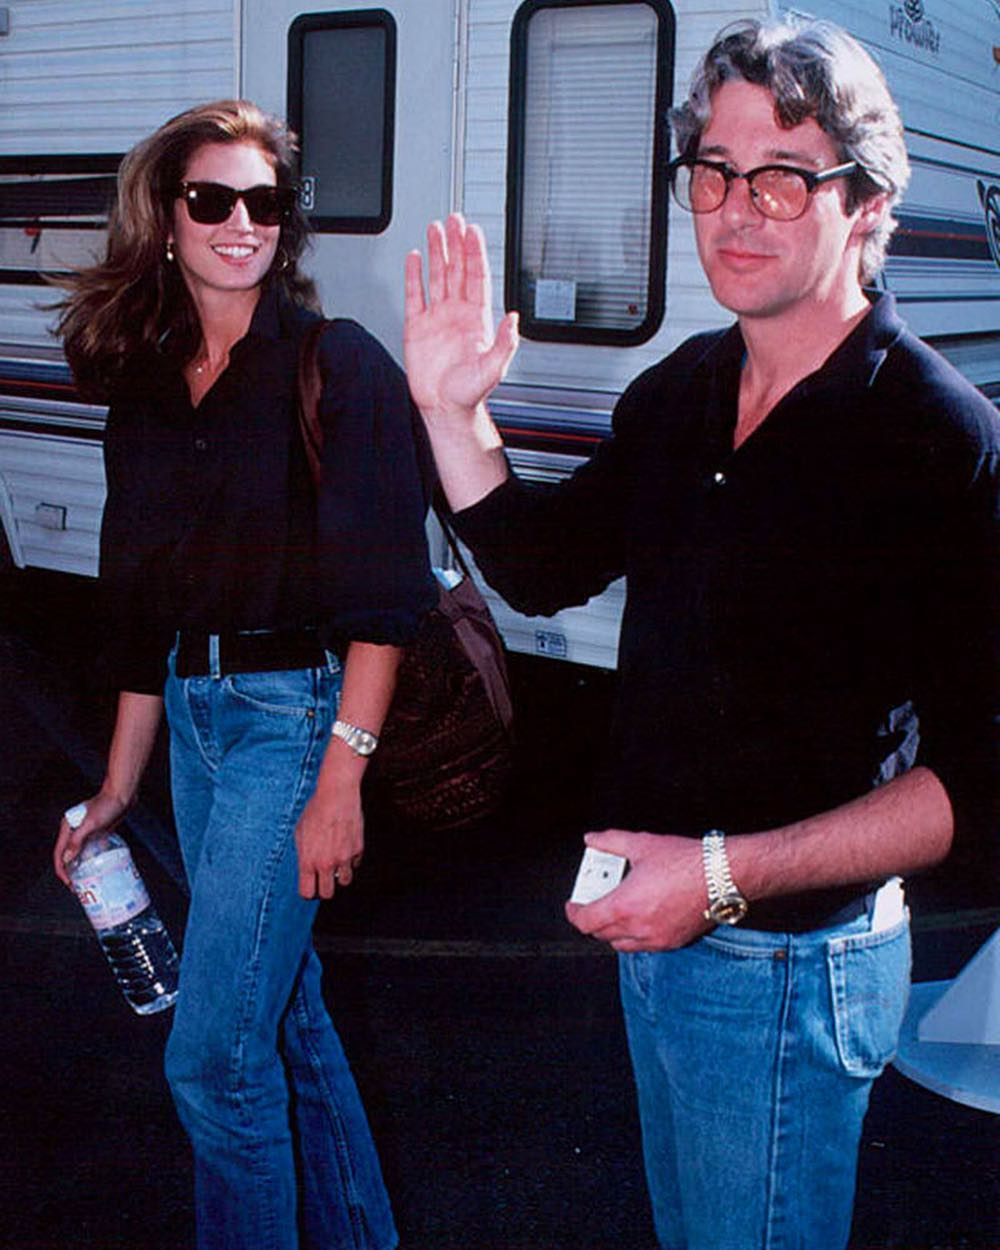 Cindy Crawford e Richard Gere em 1991 © Instagram 90sanxiety